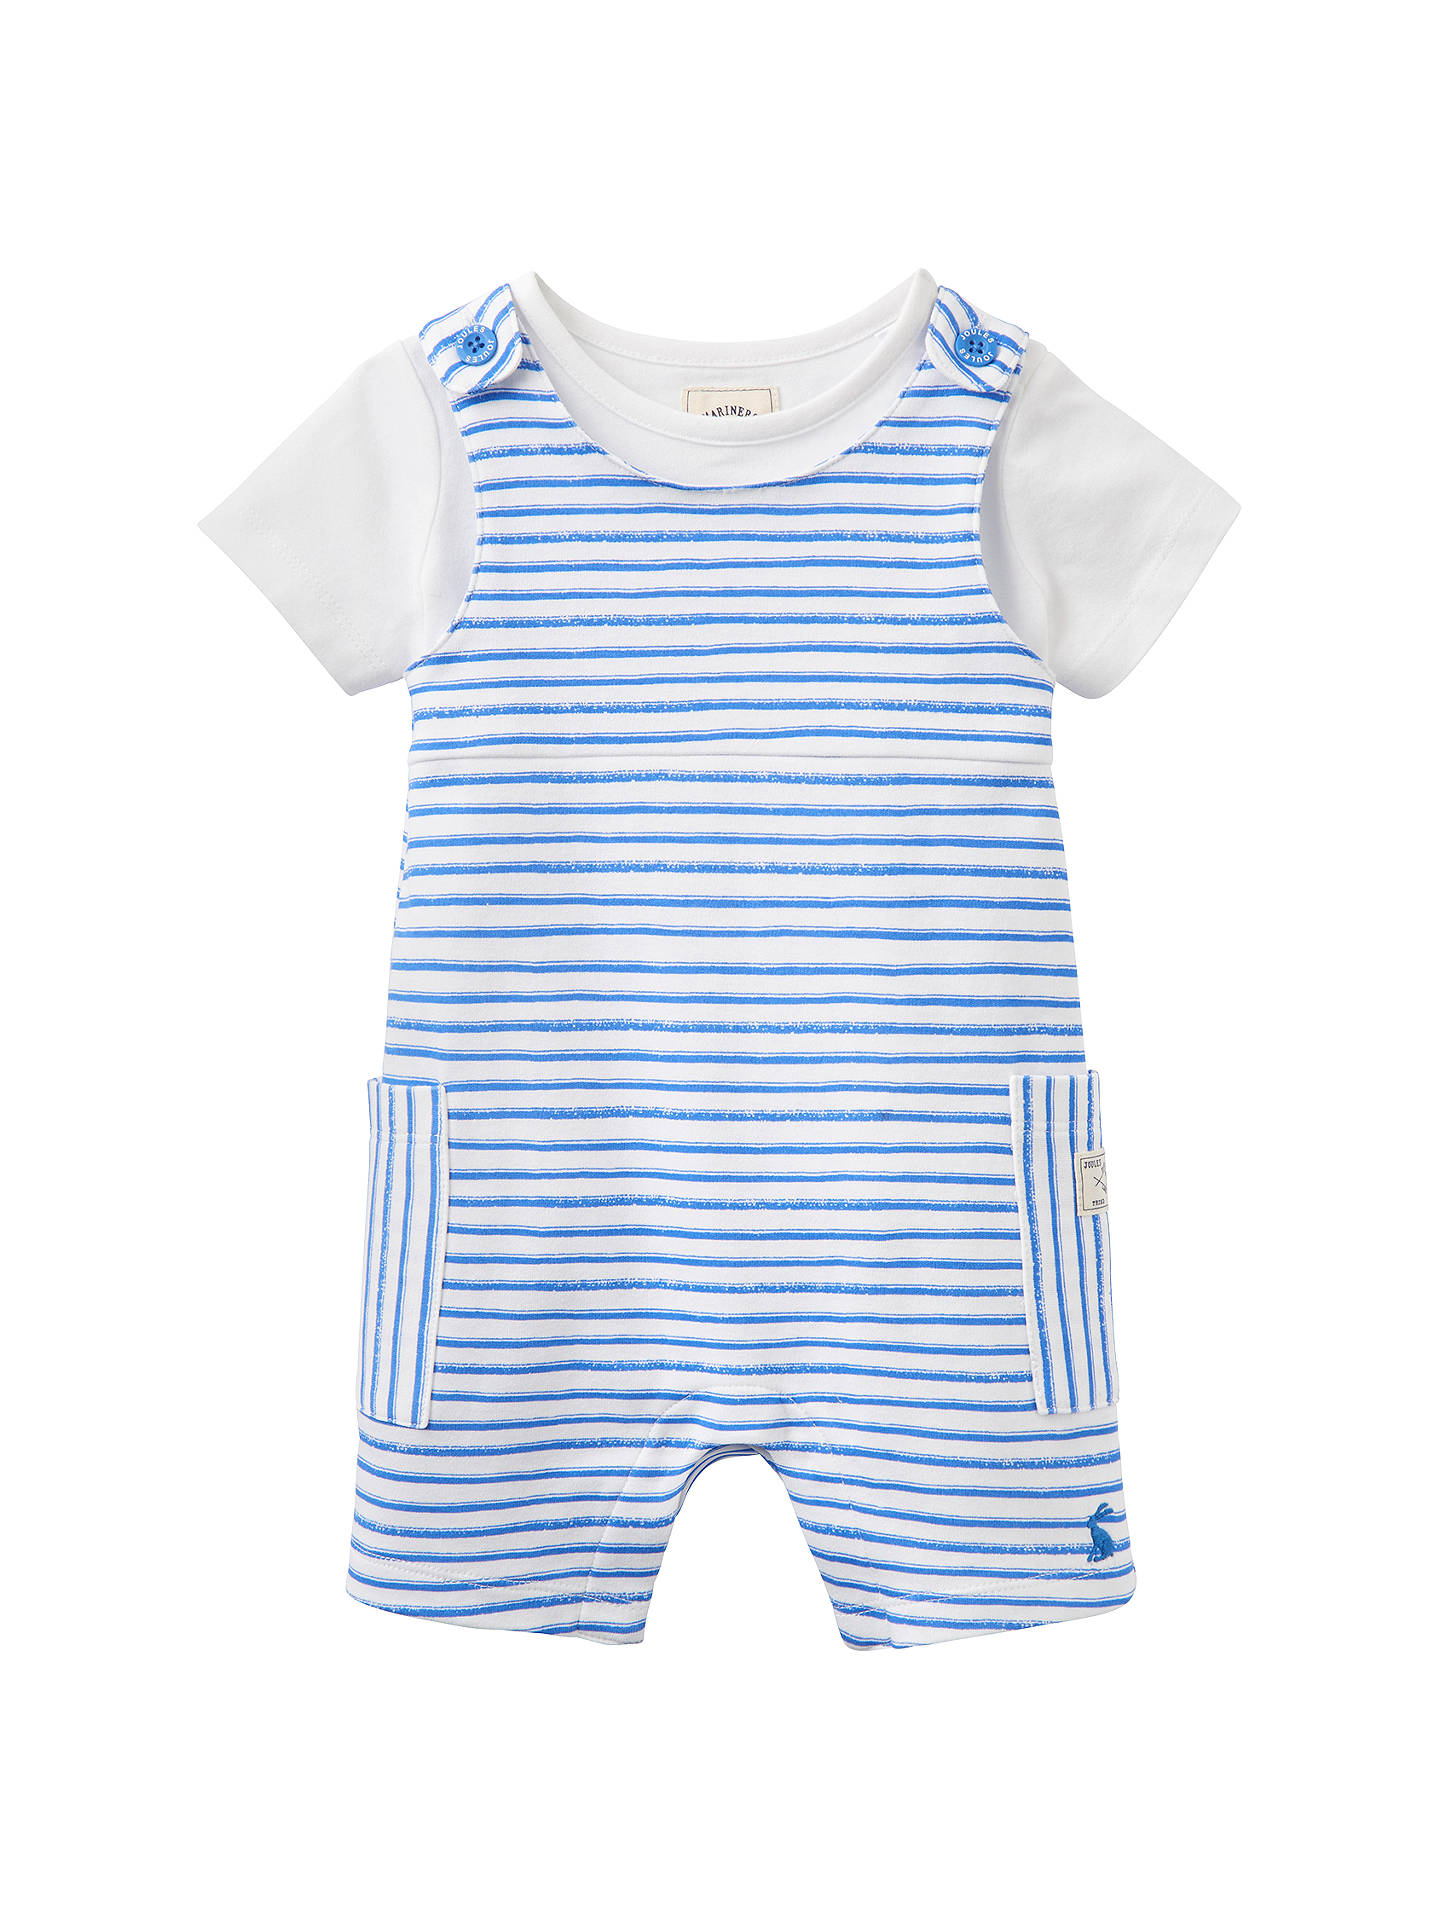 d378abca6 Details about Baby Joule Duncan Striped Jersey Dungaree Set Blue/White  12-18 Mths Brand New